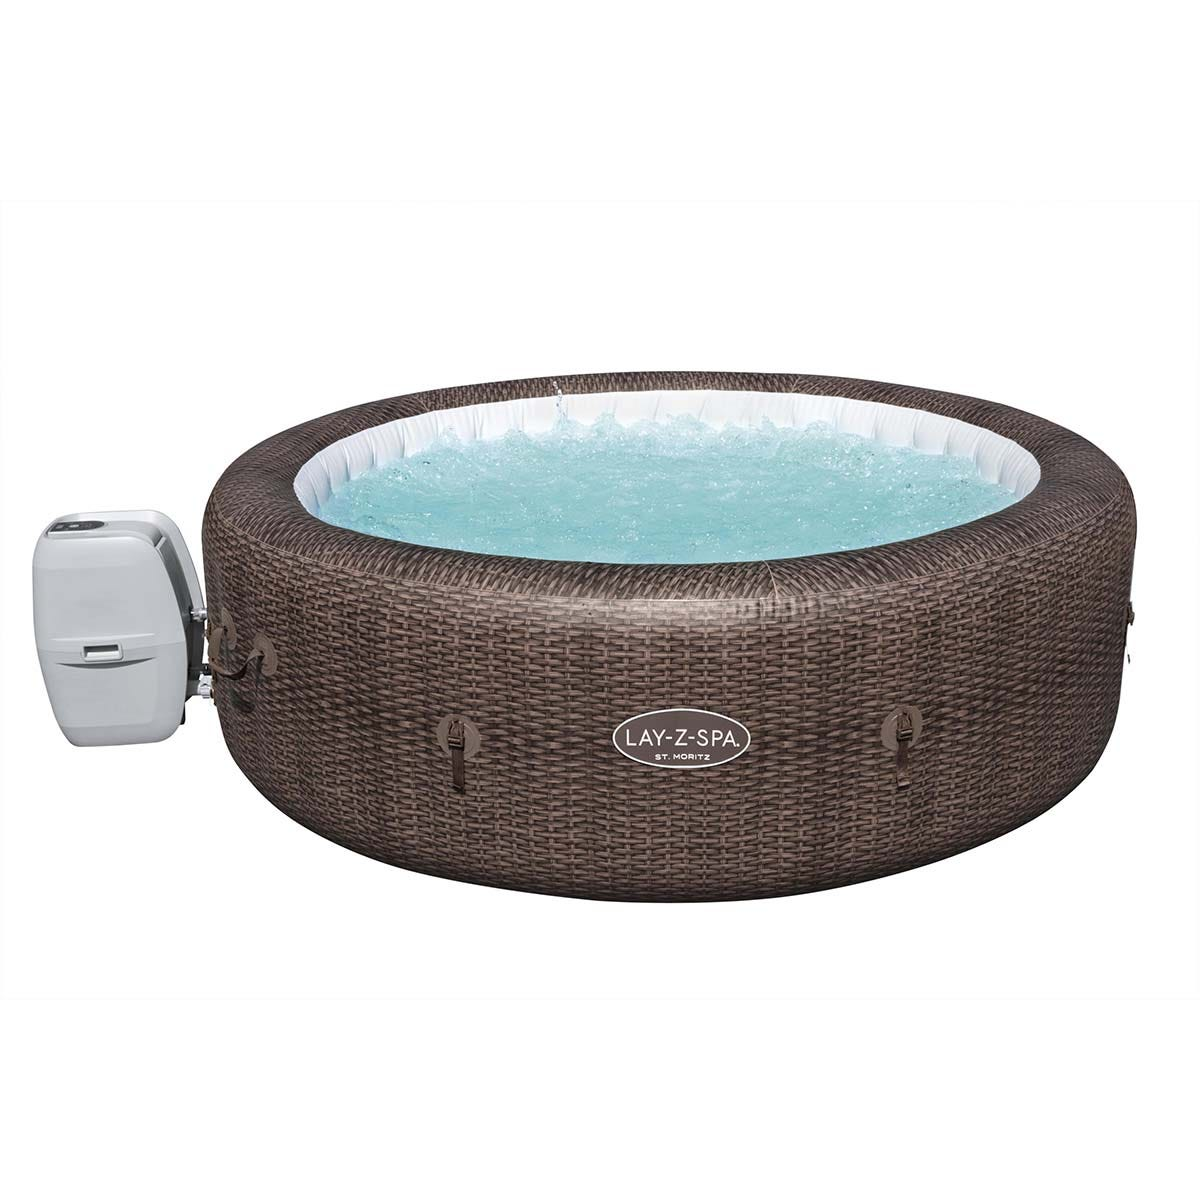 Lay-Z-Spa St Moritz AirJet Hot Tub Inflatable Spa, 5-7 Persons